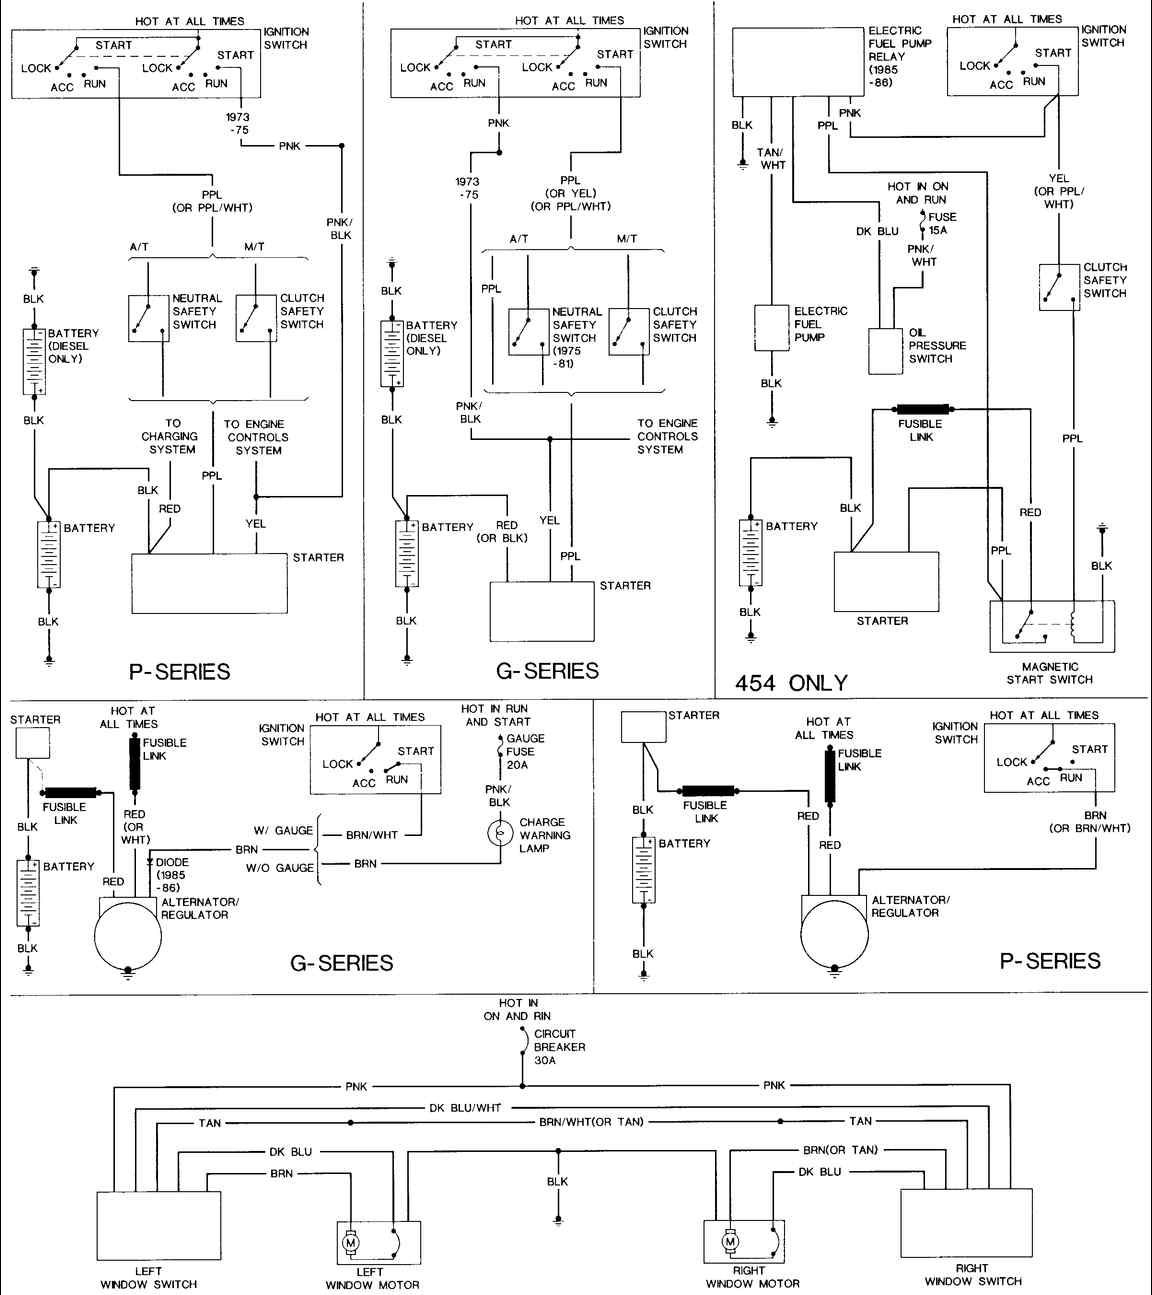 85 chevy truck wiring diagram 85 chevy van the steering column and started it by pushing rod [ 1152 x 1295 Pixel ]